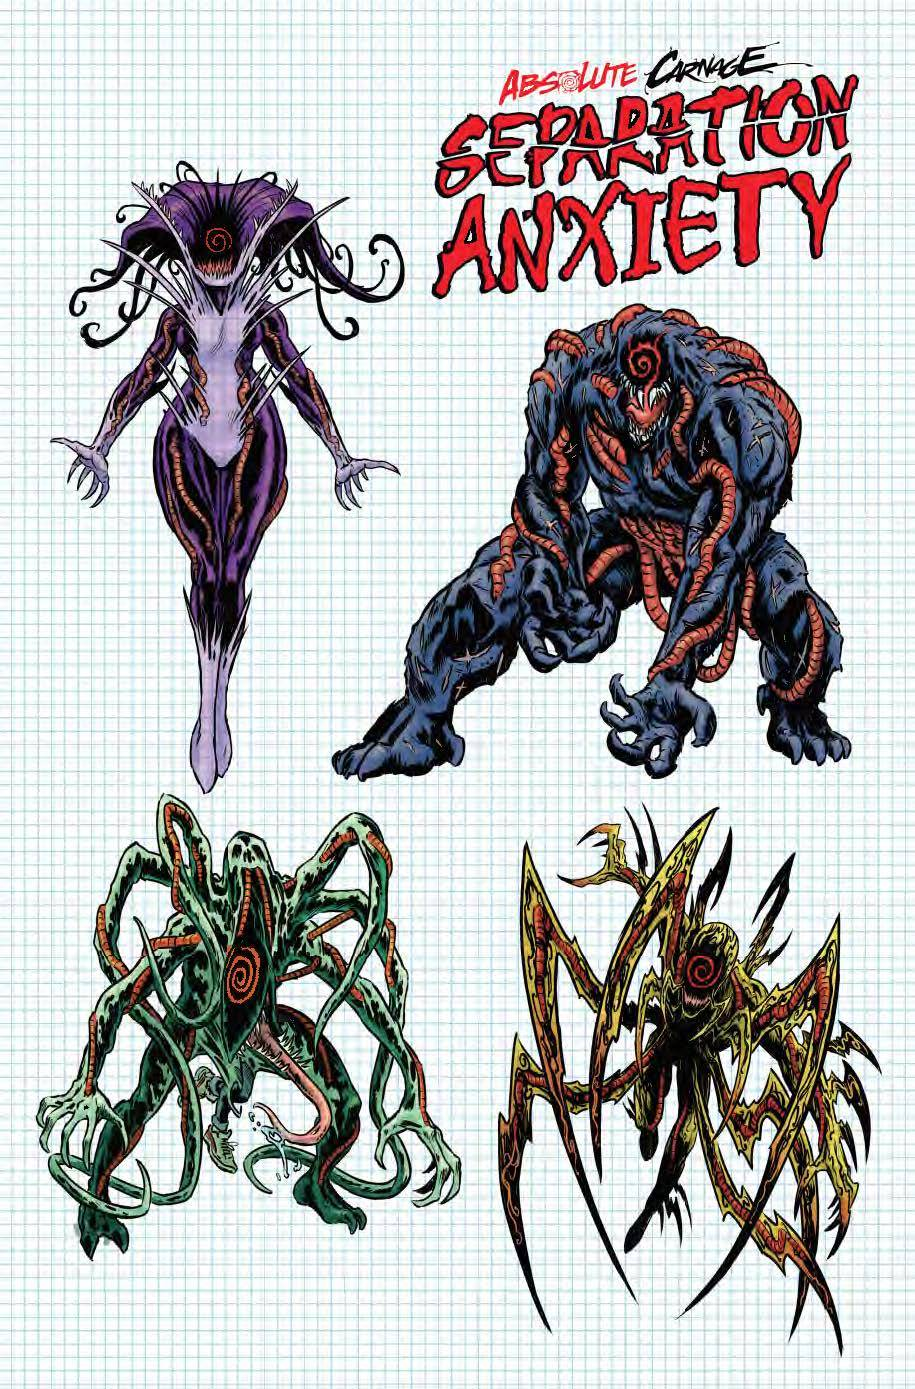 ABSOLUTE CARNAGE SEPARATION ANXIETY 1 LEVEL DESIGN VAR AC.jpg